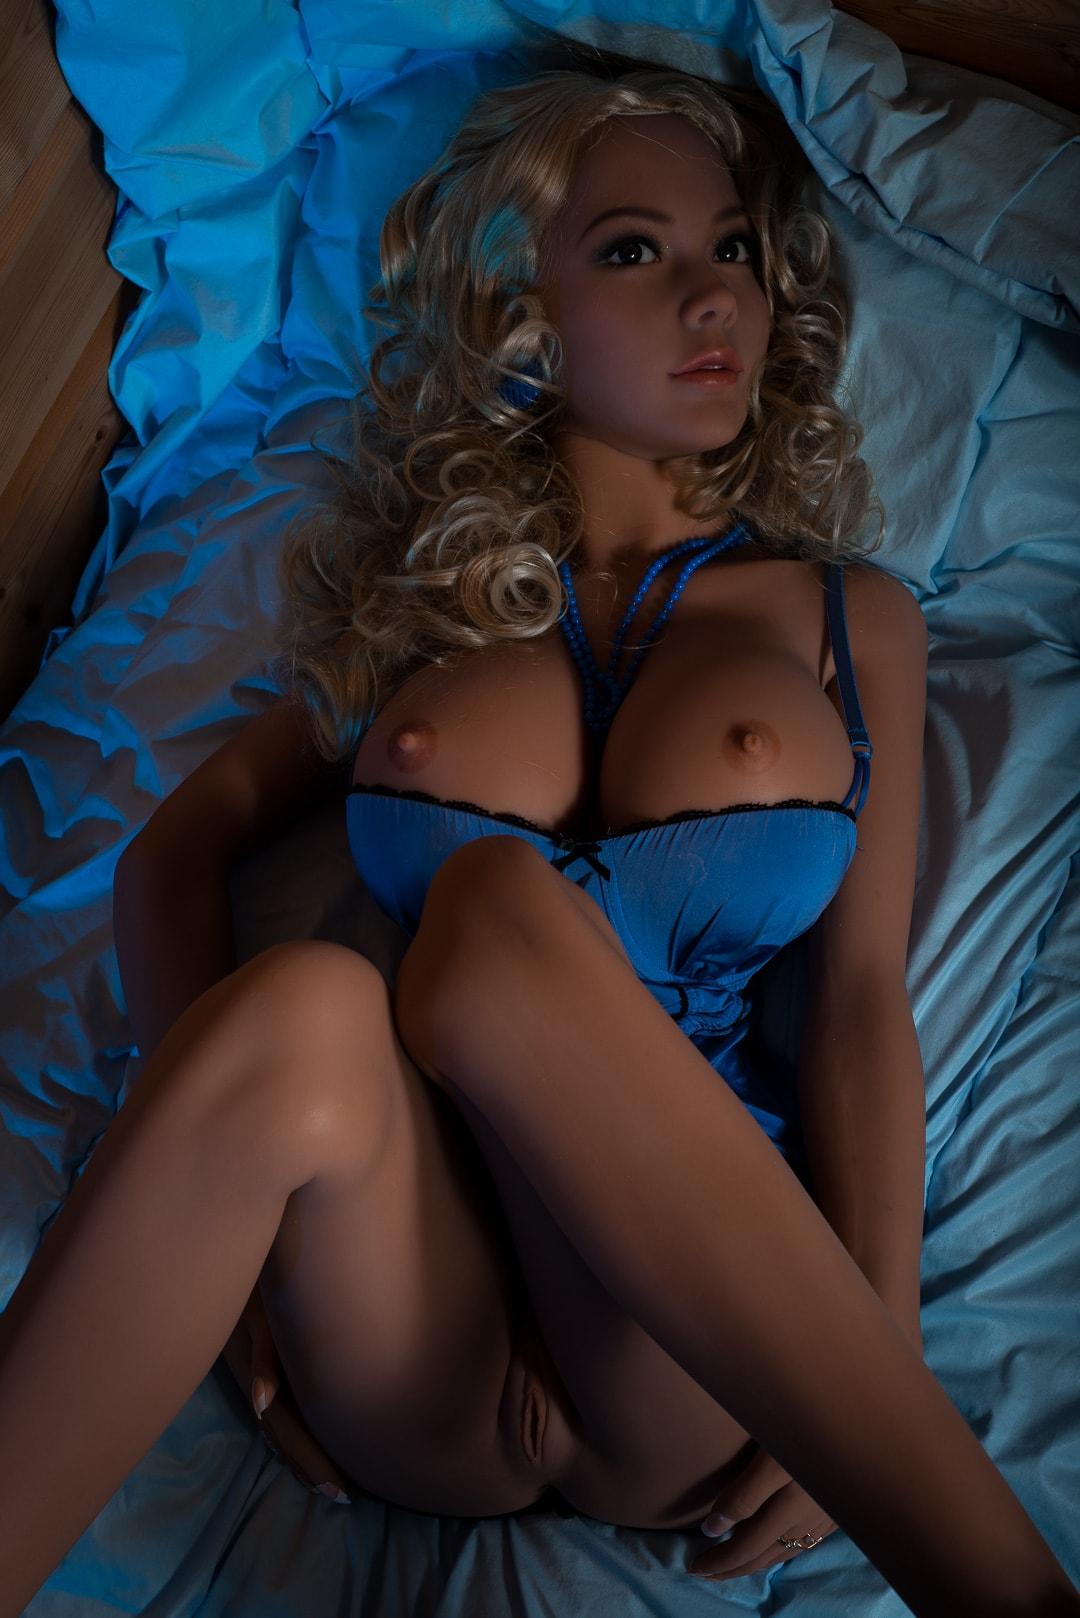 michaela 155cm blonde big boobs athletic tan skin tpe wm sex doll(6)